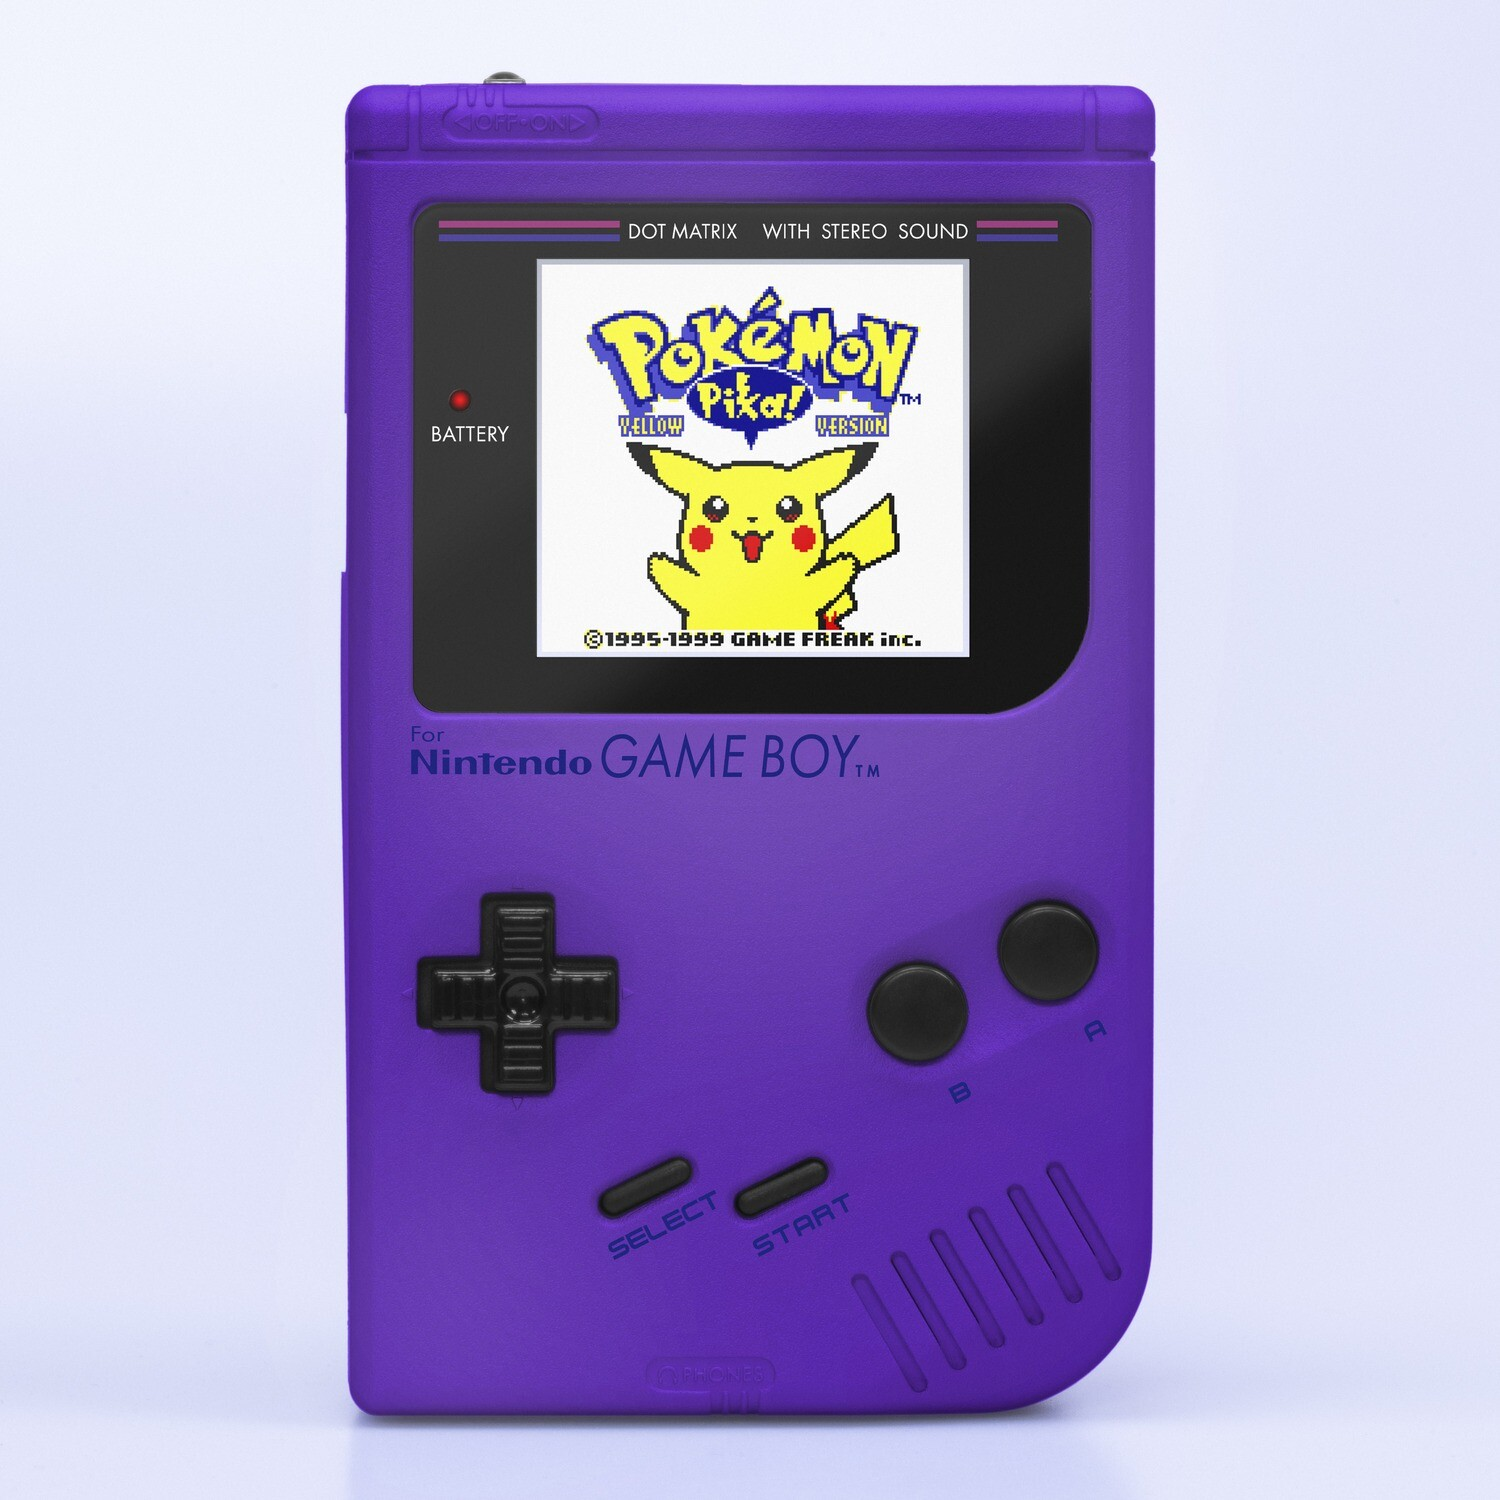 Game Boy Original: Prestige Edition (Pearl Purple)